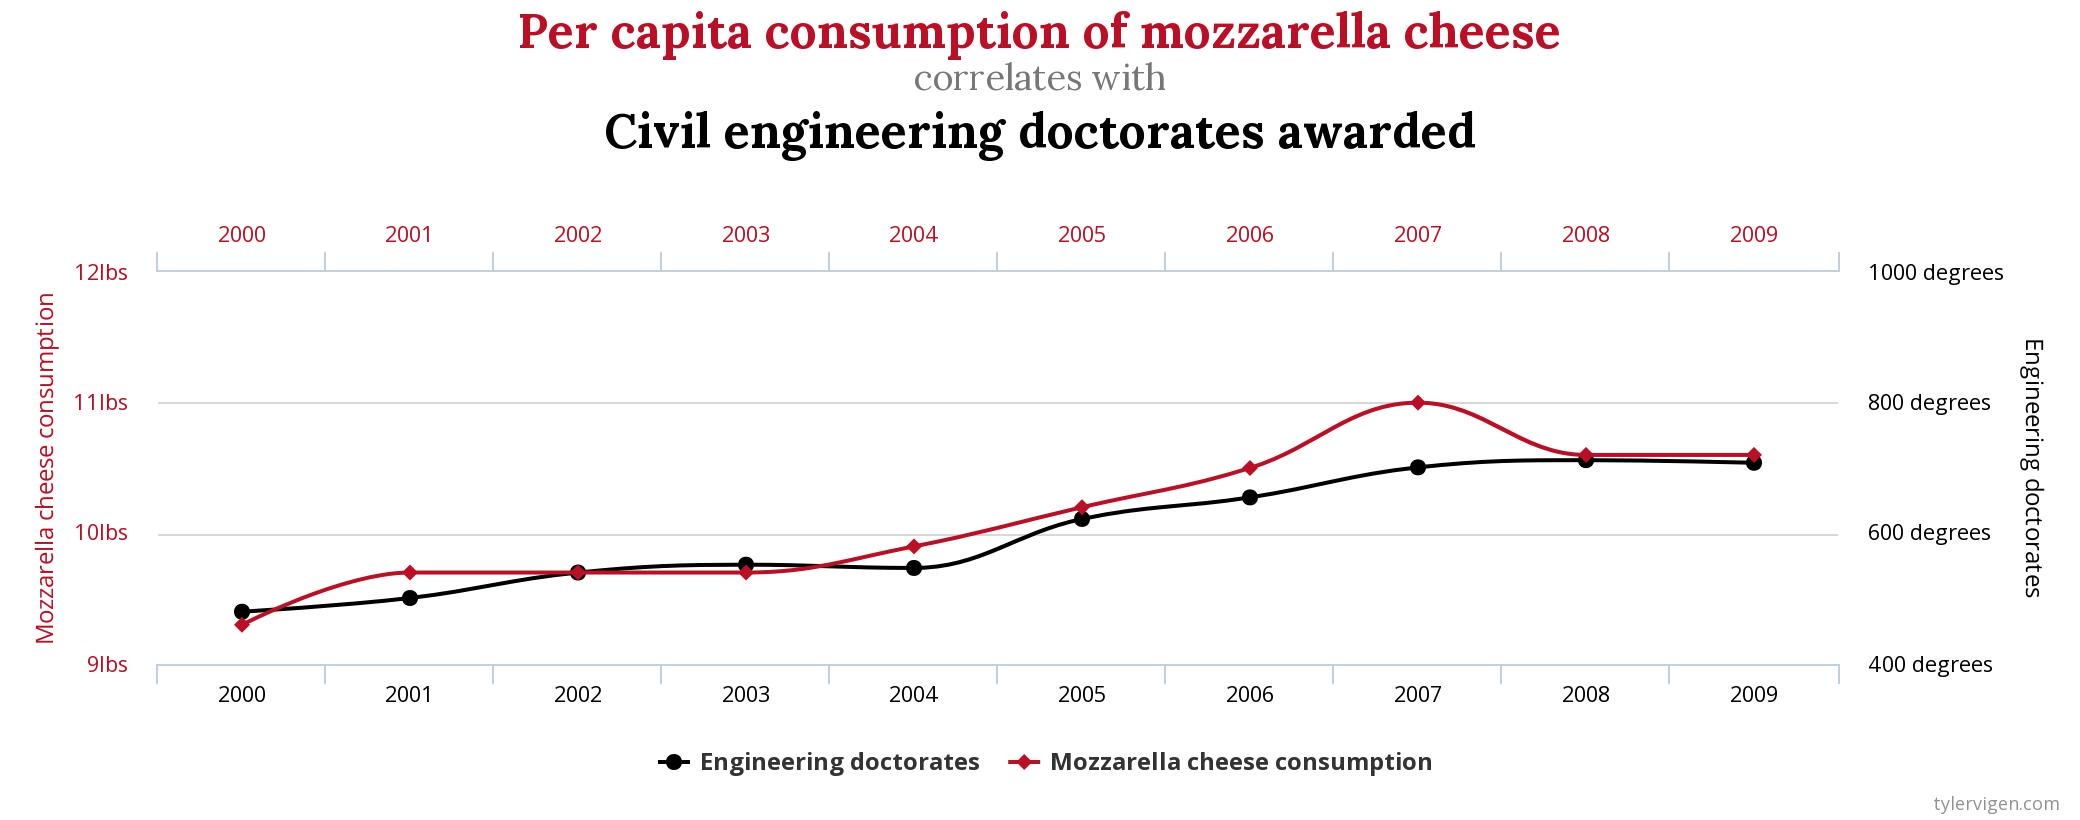 Chart showing a strong correlation between mozzarella cheese consumption and the number of civil engineering doctorates awarded